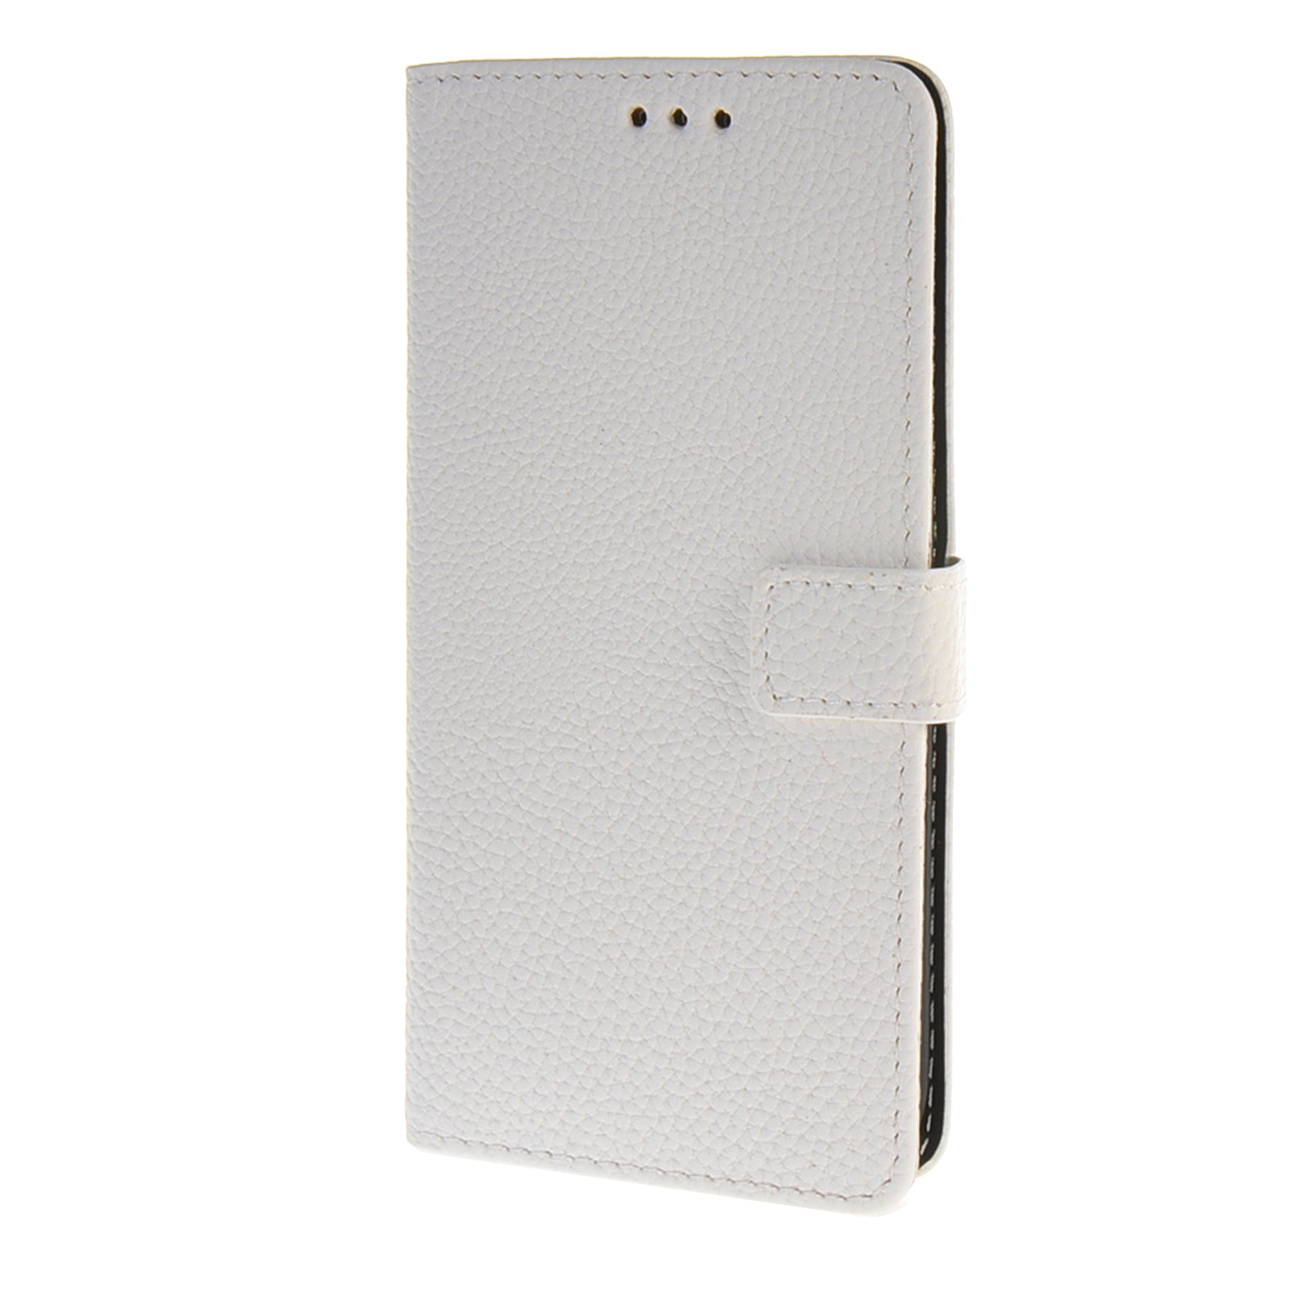 MOONCASE mooncase senior leather flip wallet card slot bracket back чехол для cover samsung galaxy s6 edge белый